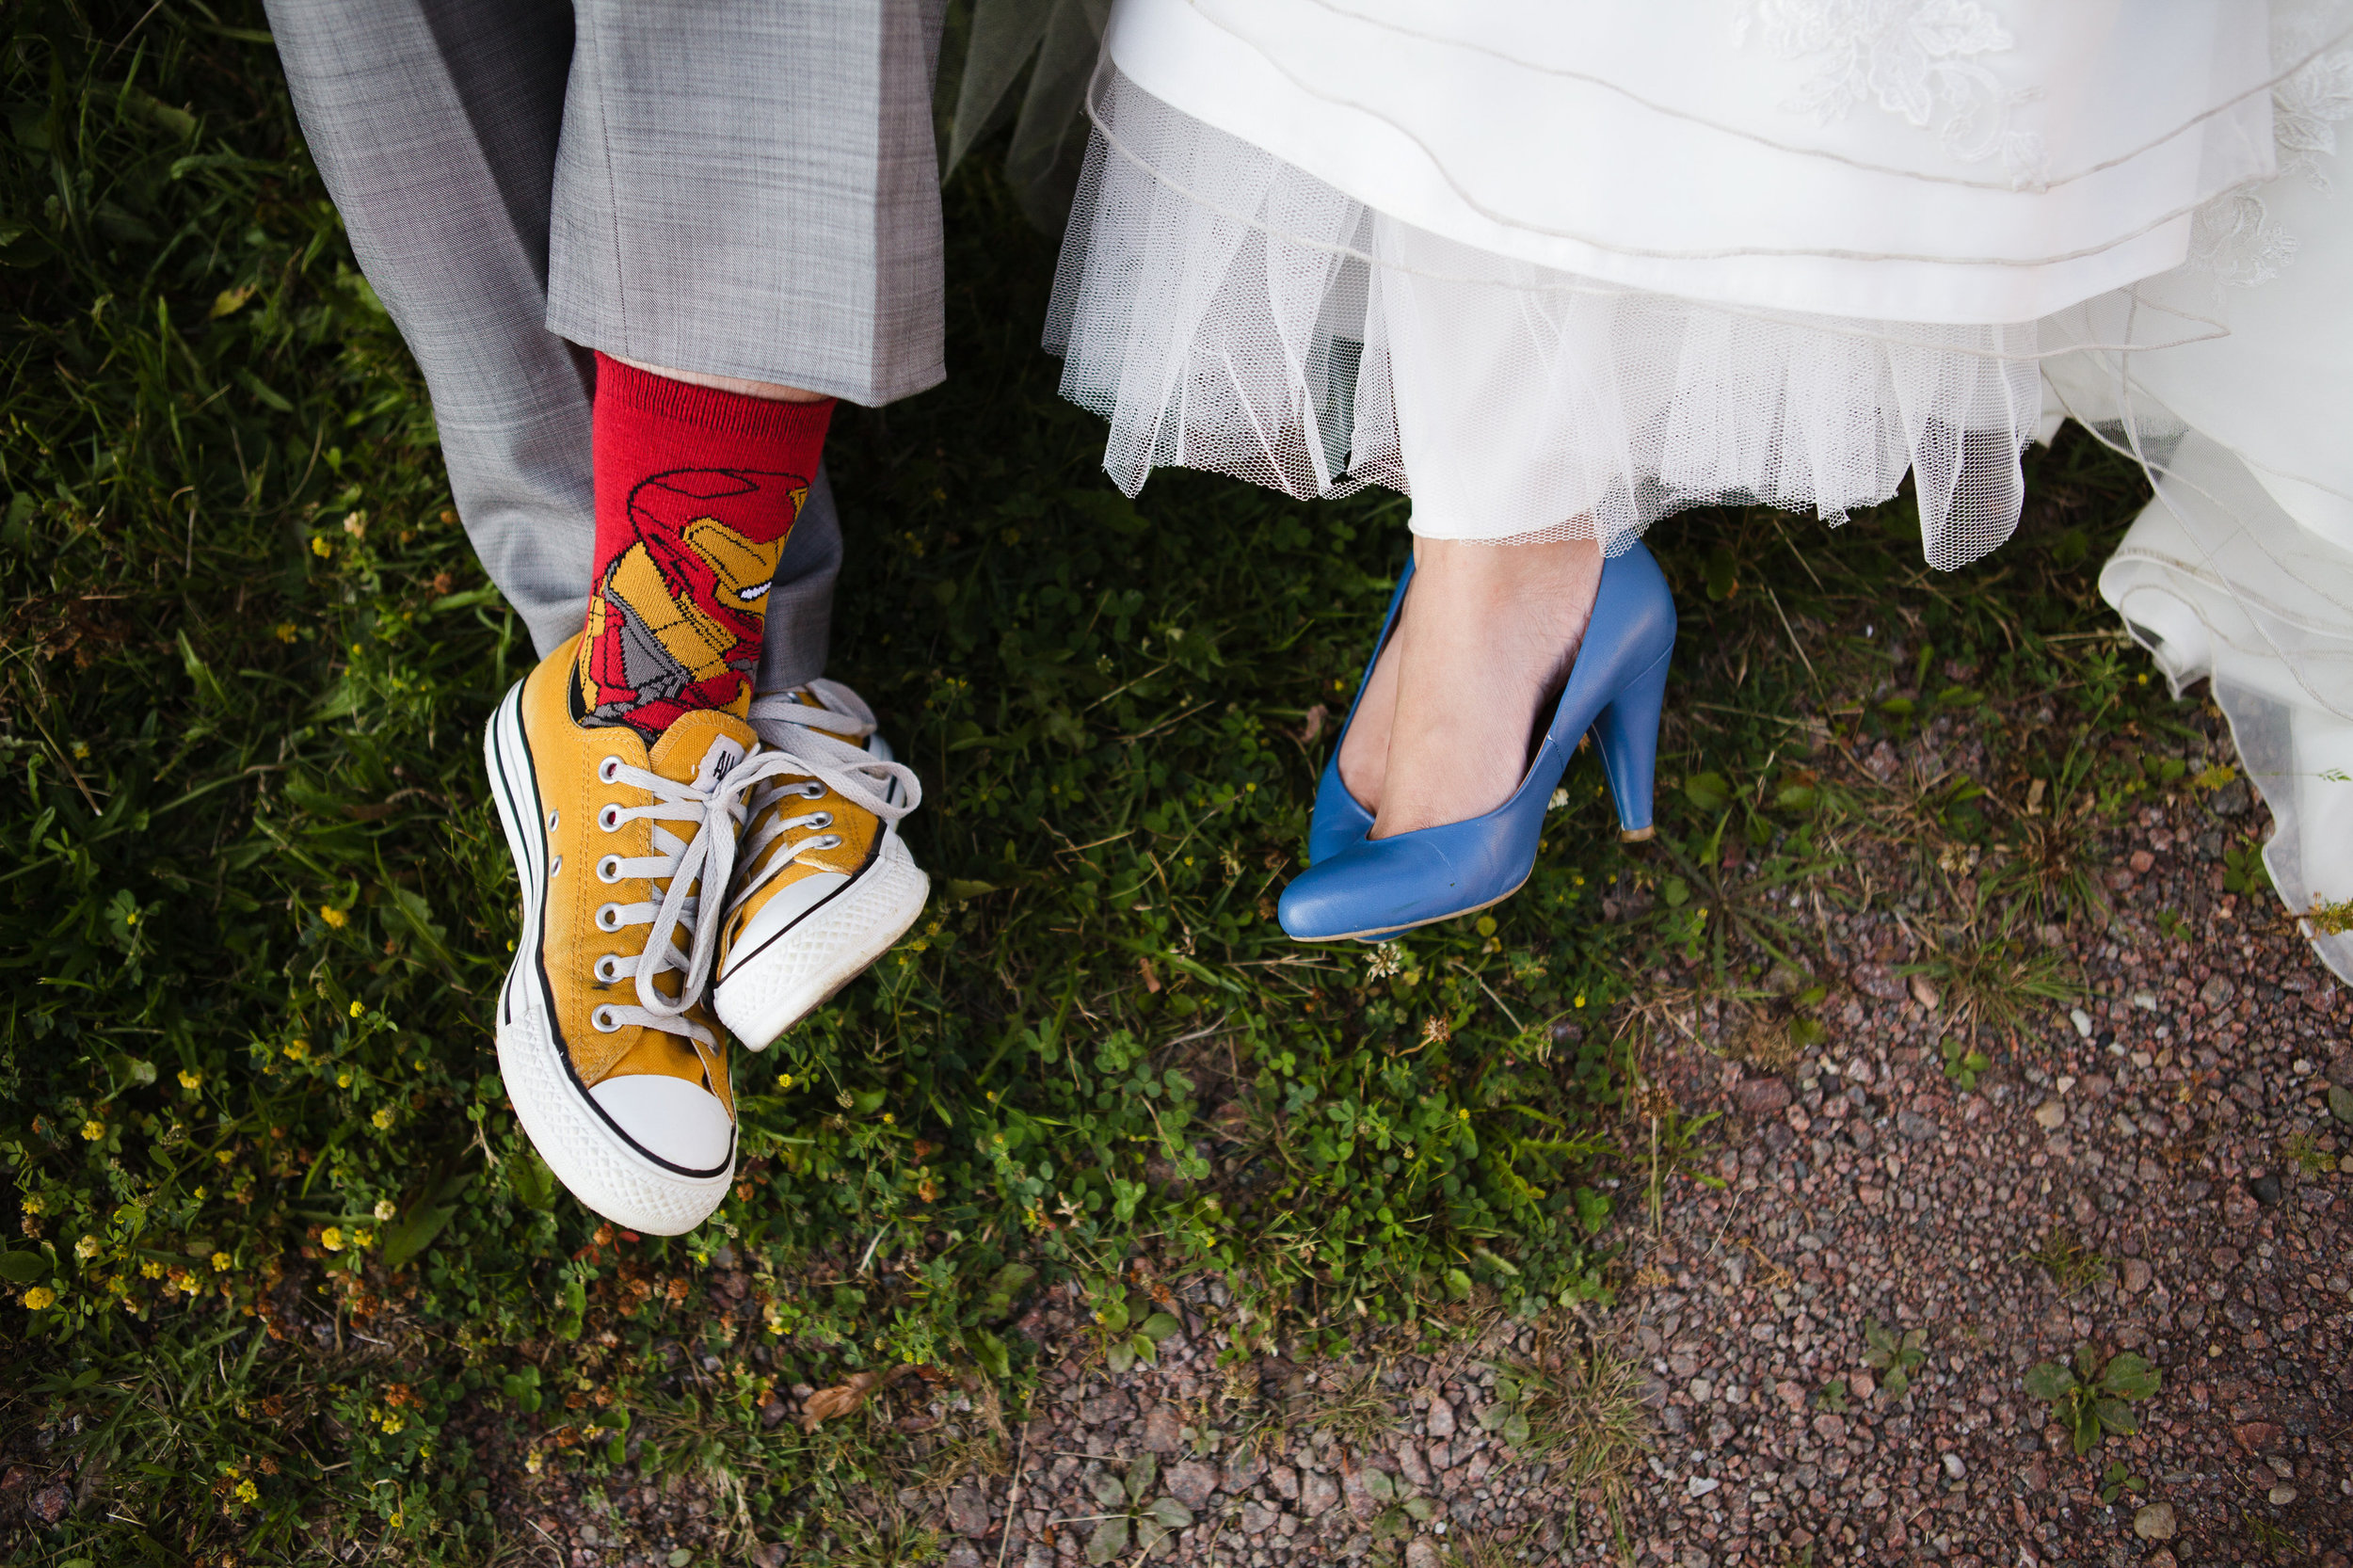 moncton_wedding_photographer_caro_photo-26.jpg